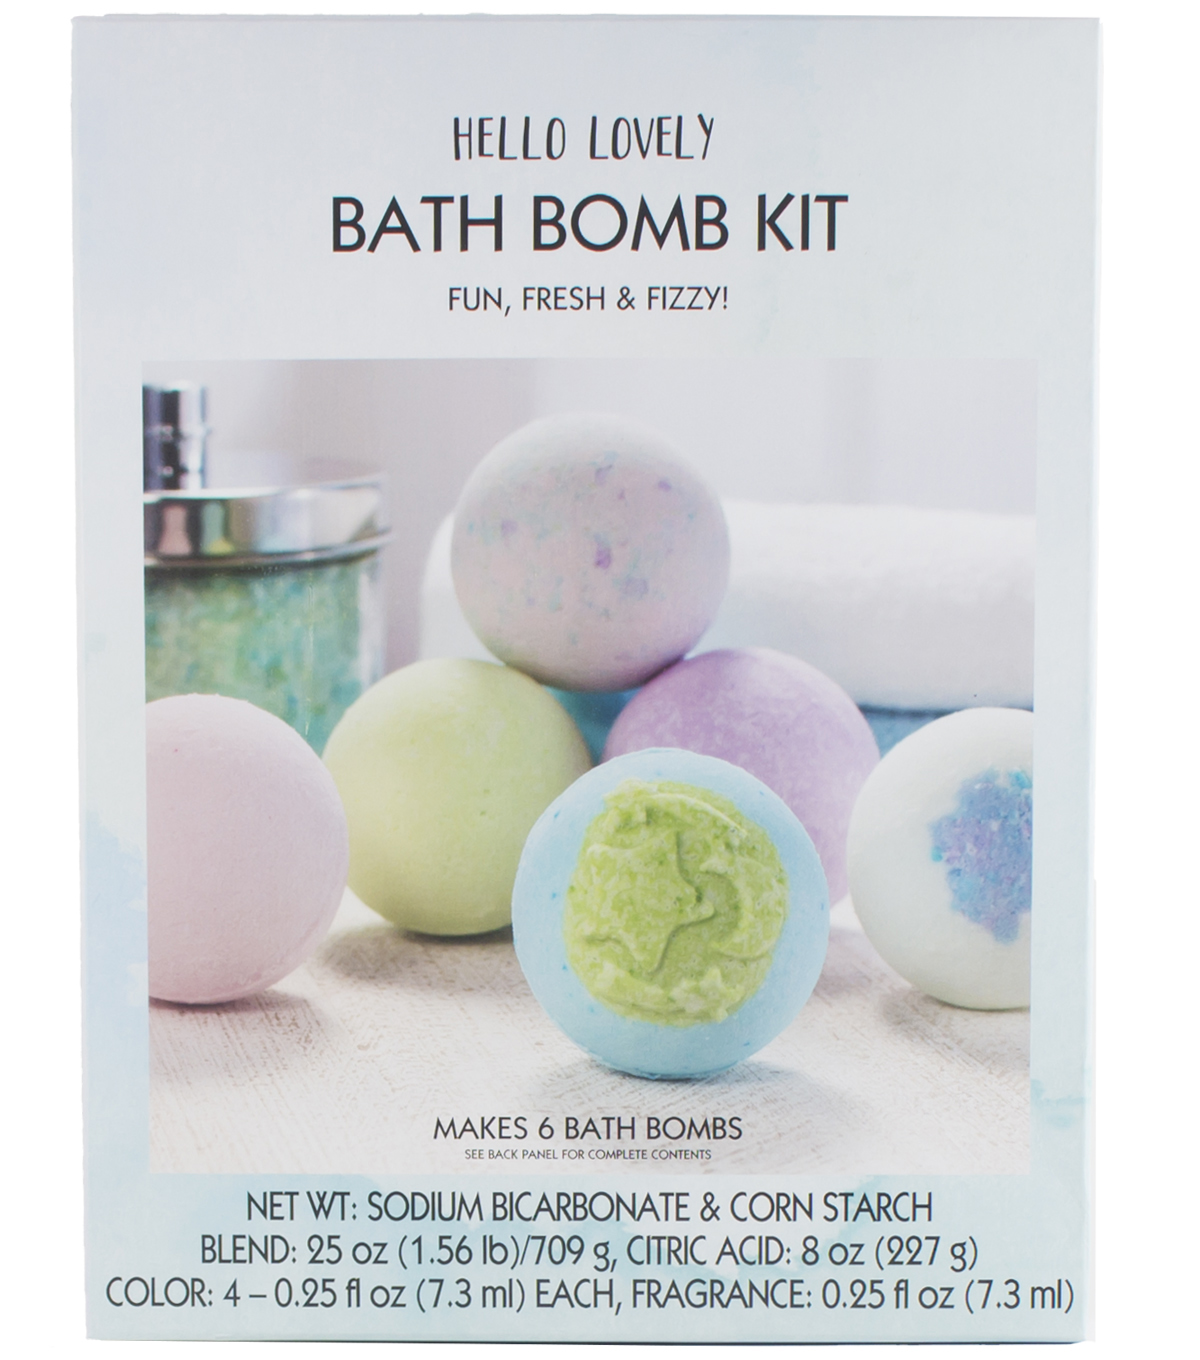 Hello Lovely Bath Bomb Kit